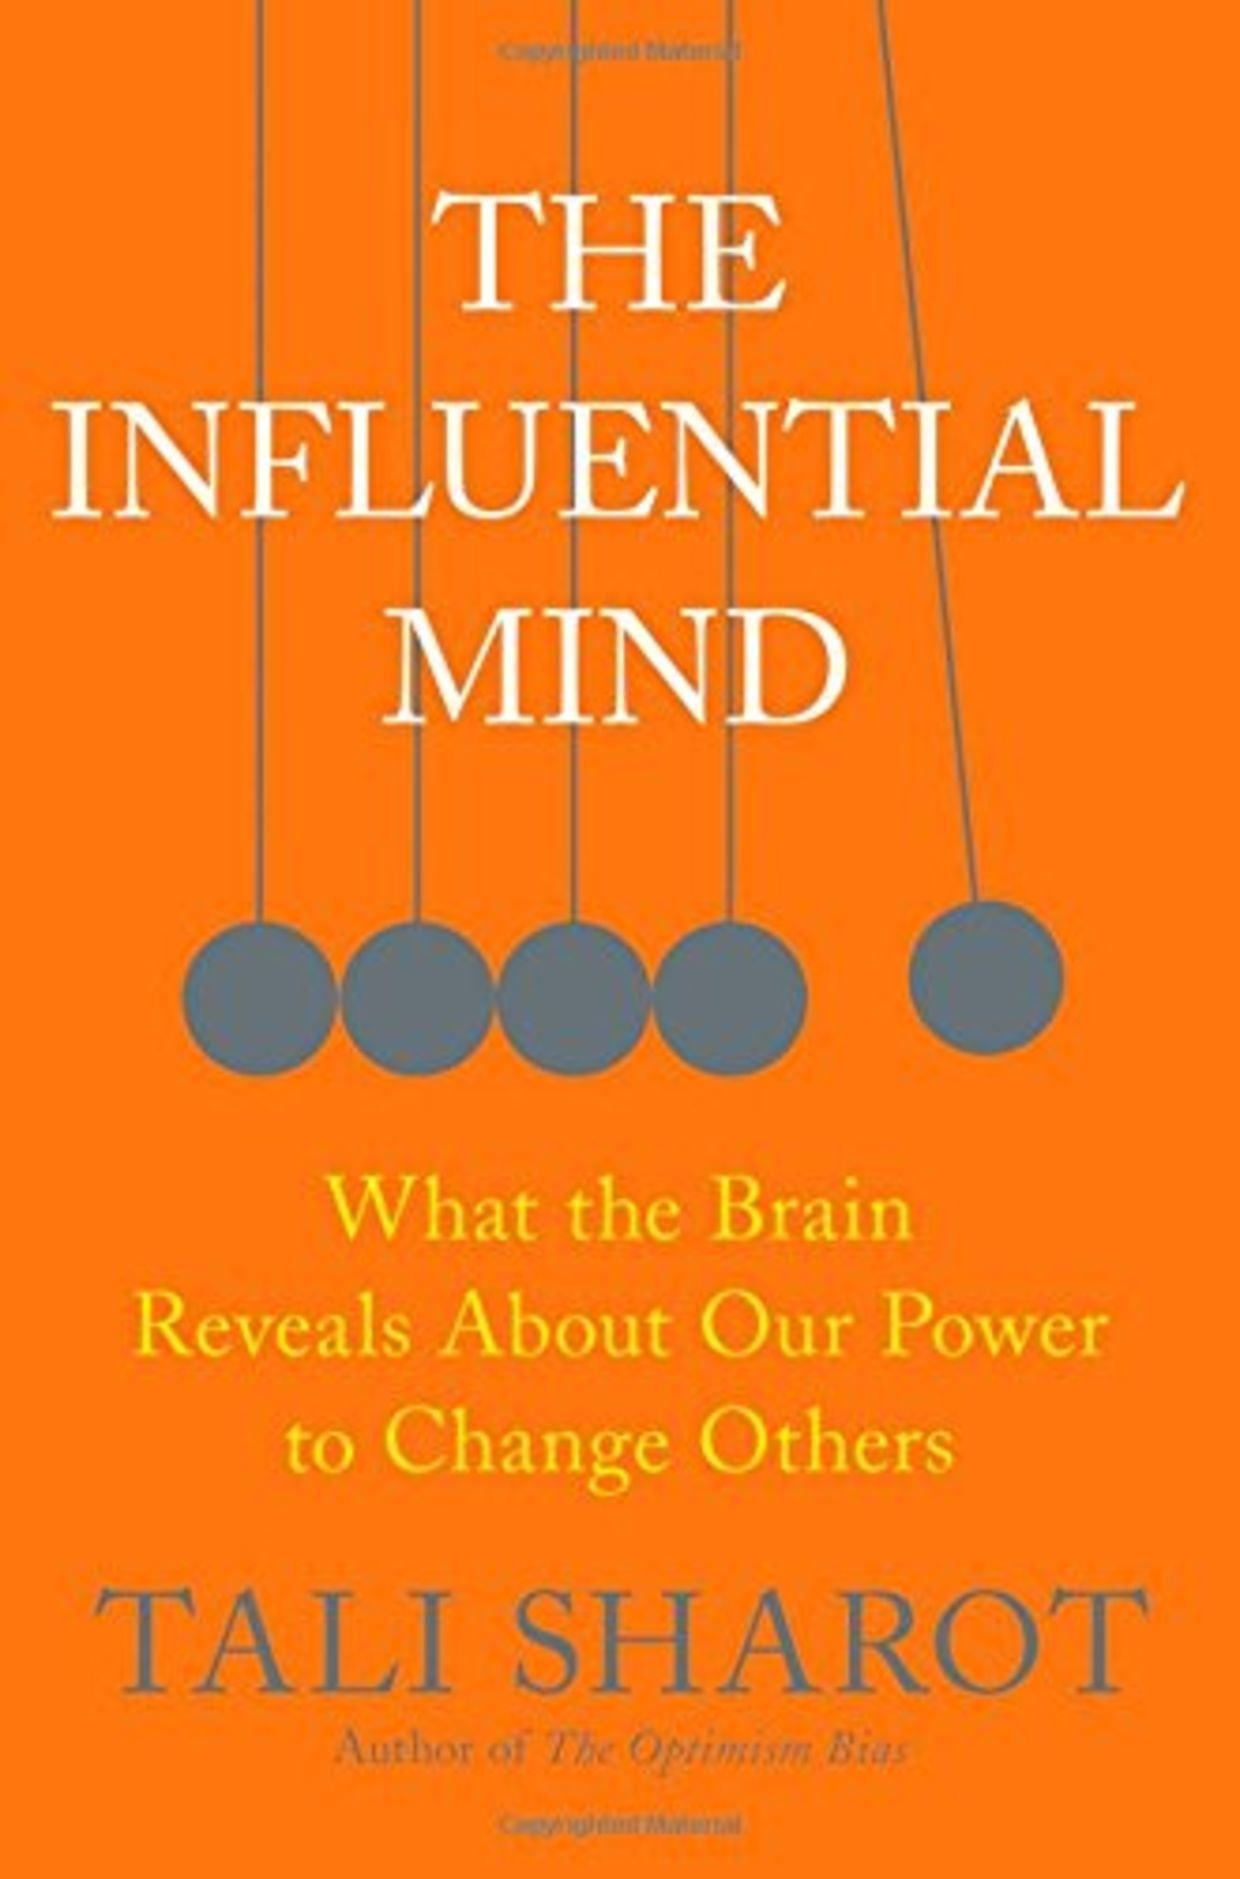 The Influential Mind: What the Brain Reveals About Our Power to Change Others, by Tali Sharot